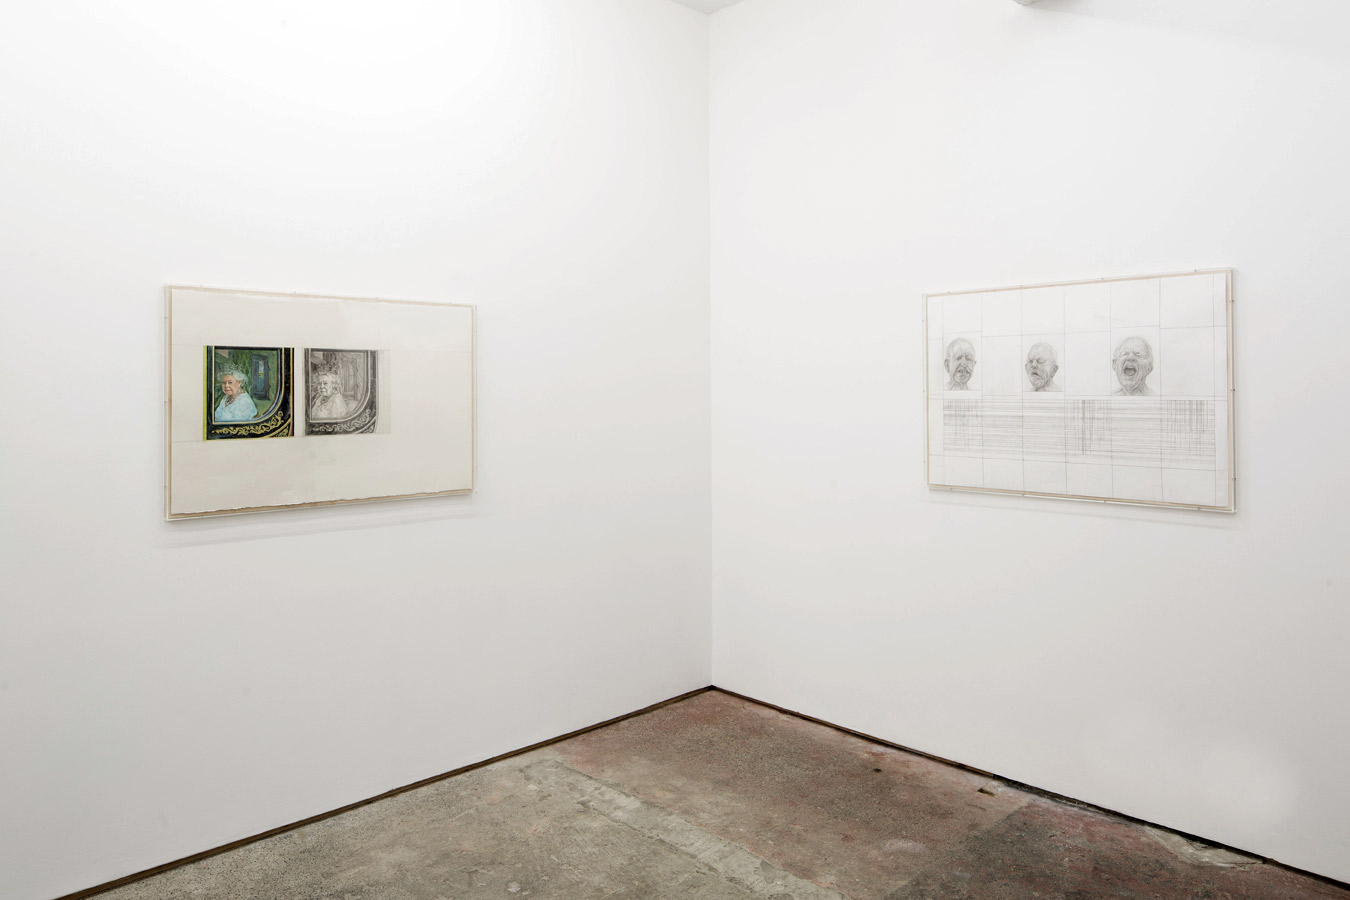 Stuart Brisley: Recent Paintings from the Museum of Ordure at Lungley gallery, London. (left to right; State Occasion from The Museum of Ordure (2020); Heads from The Museum of Ordure (2020)